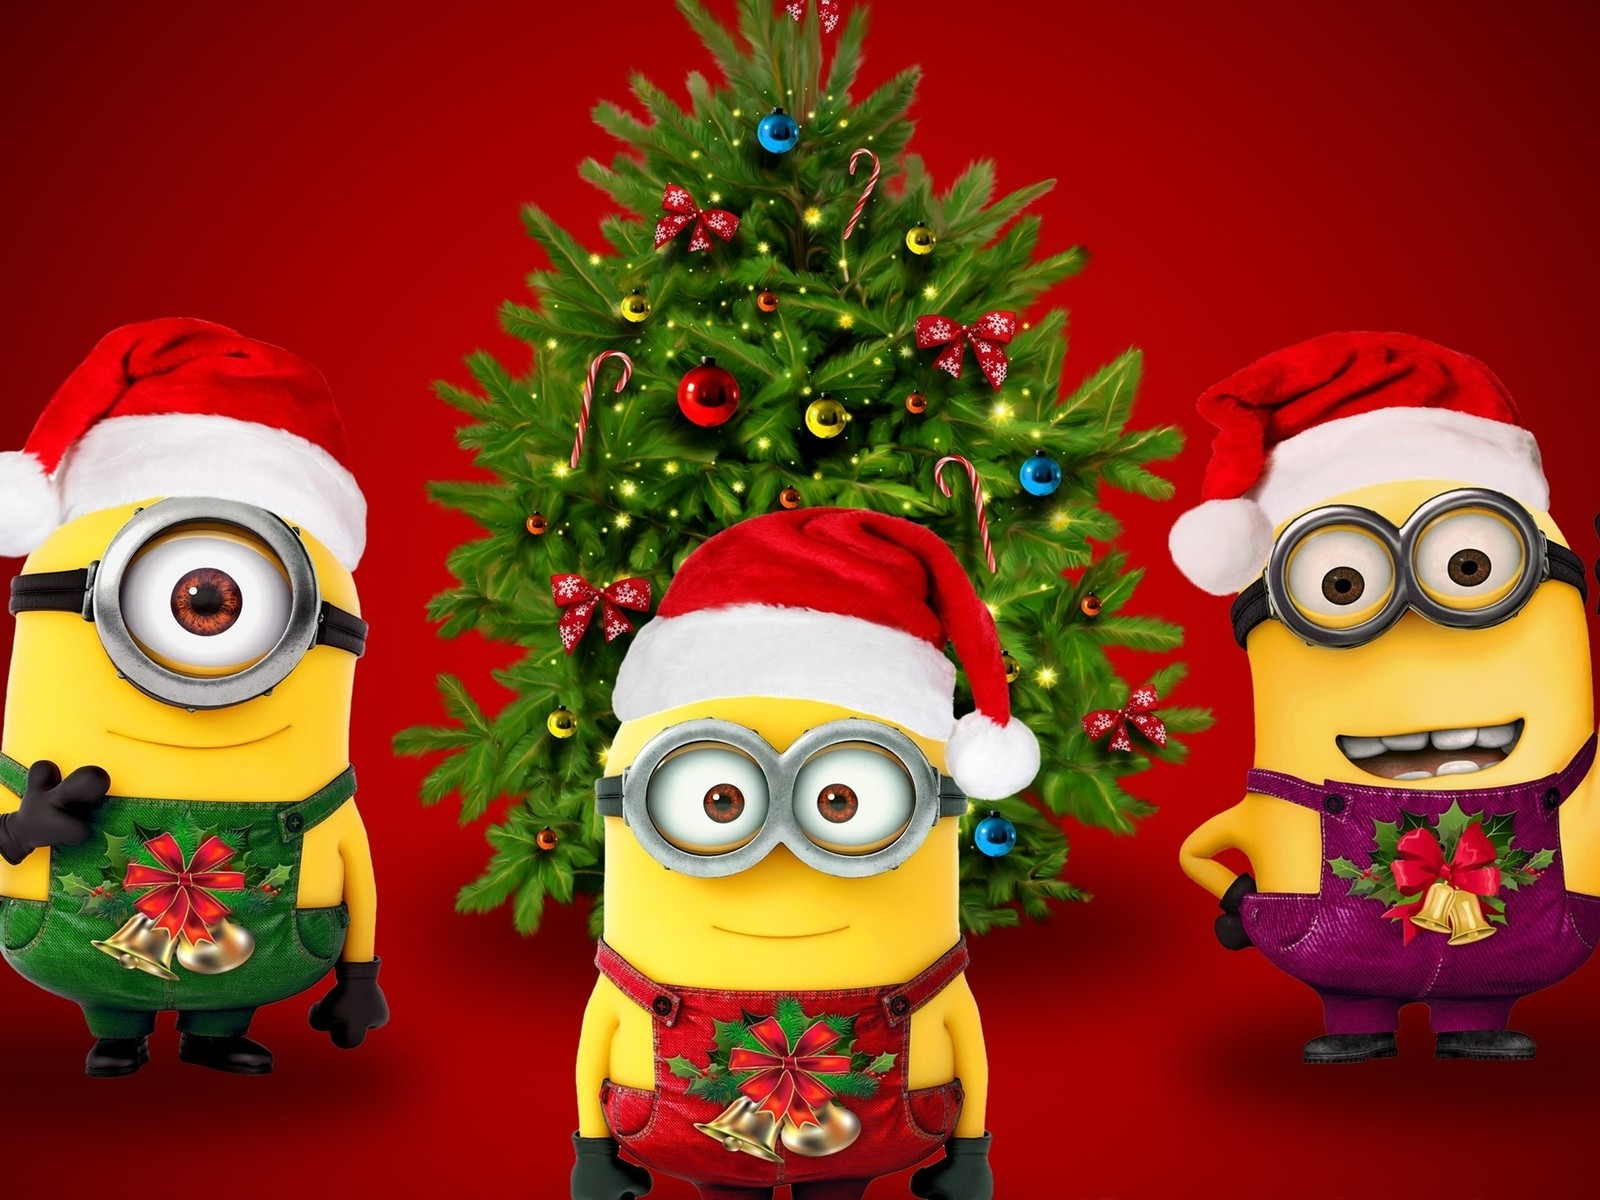 Christmas & Minions for 1600 x 1200 resolution